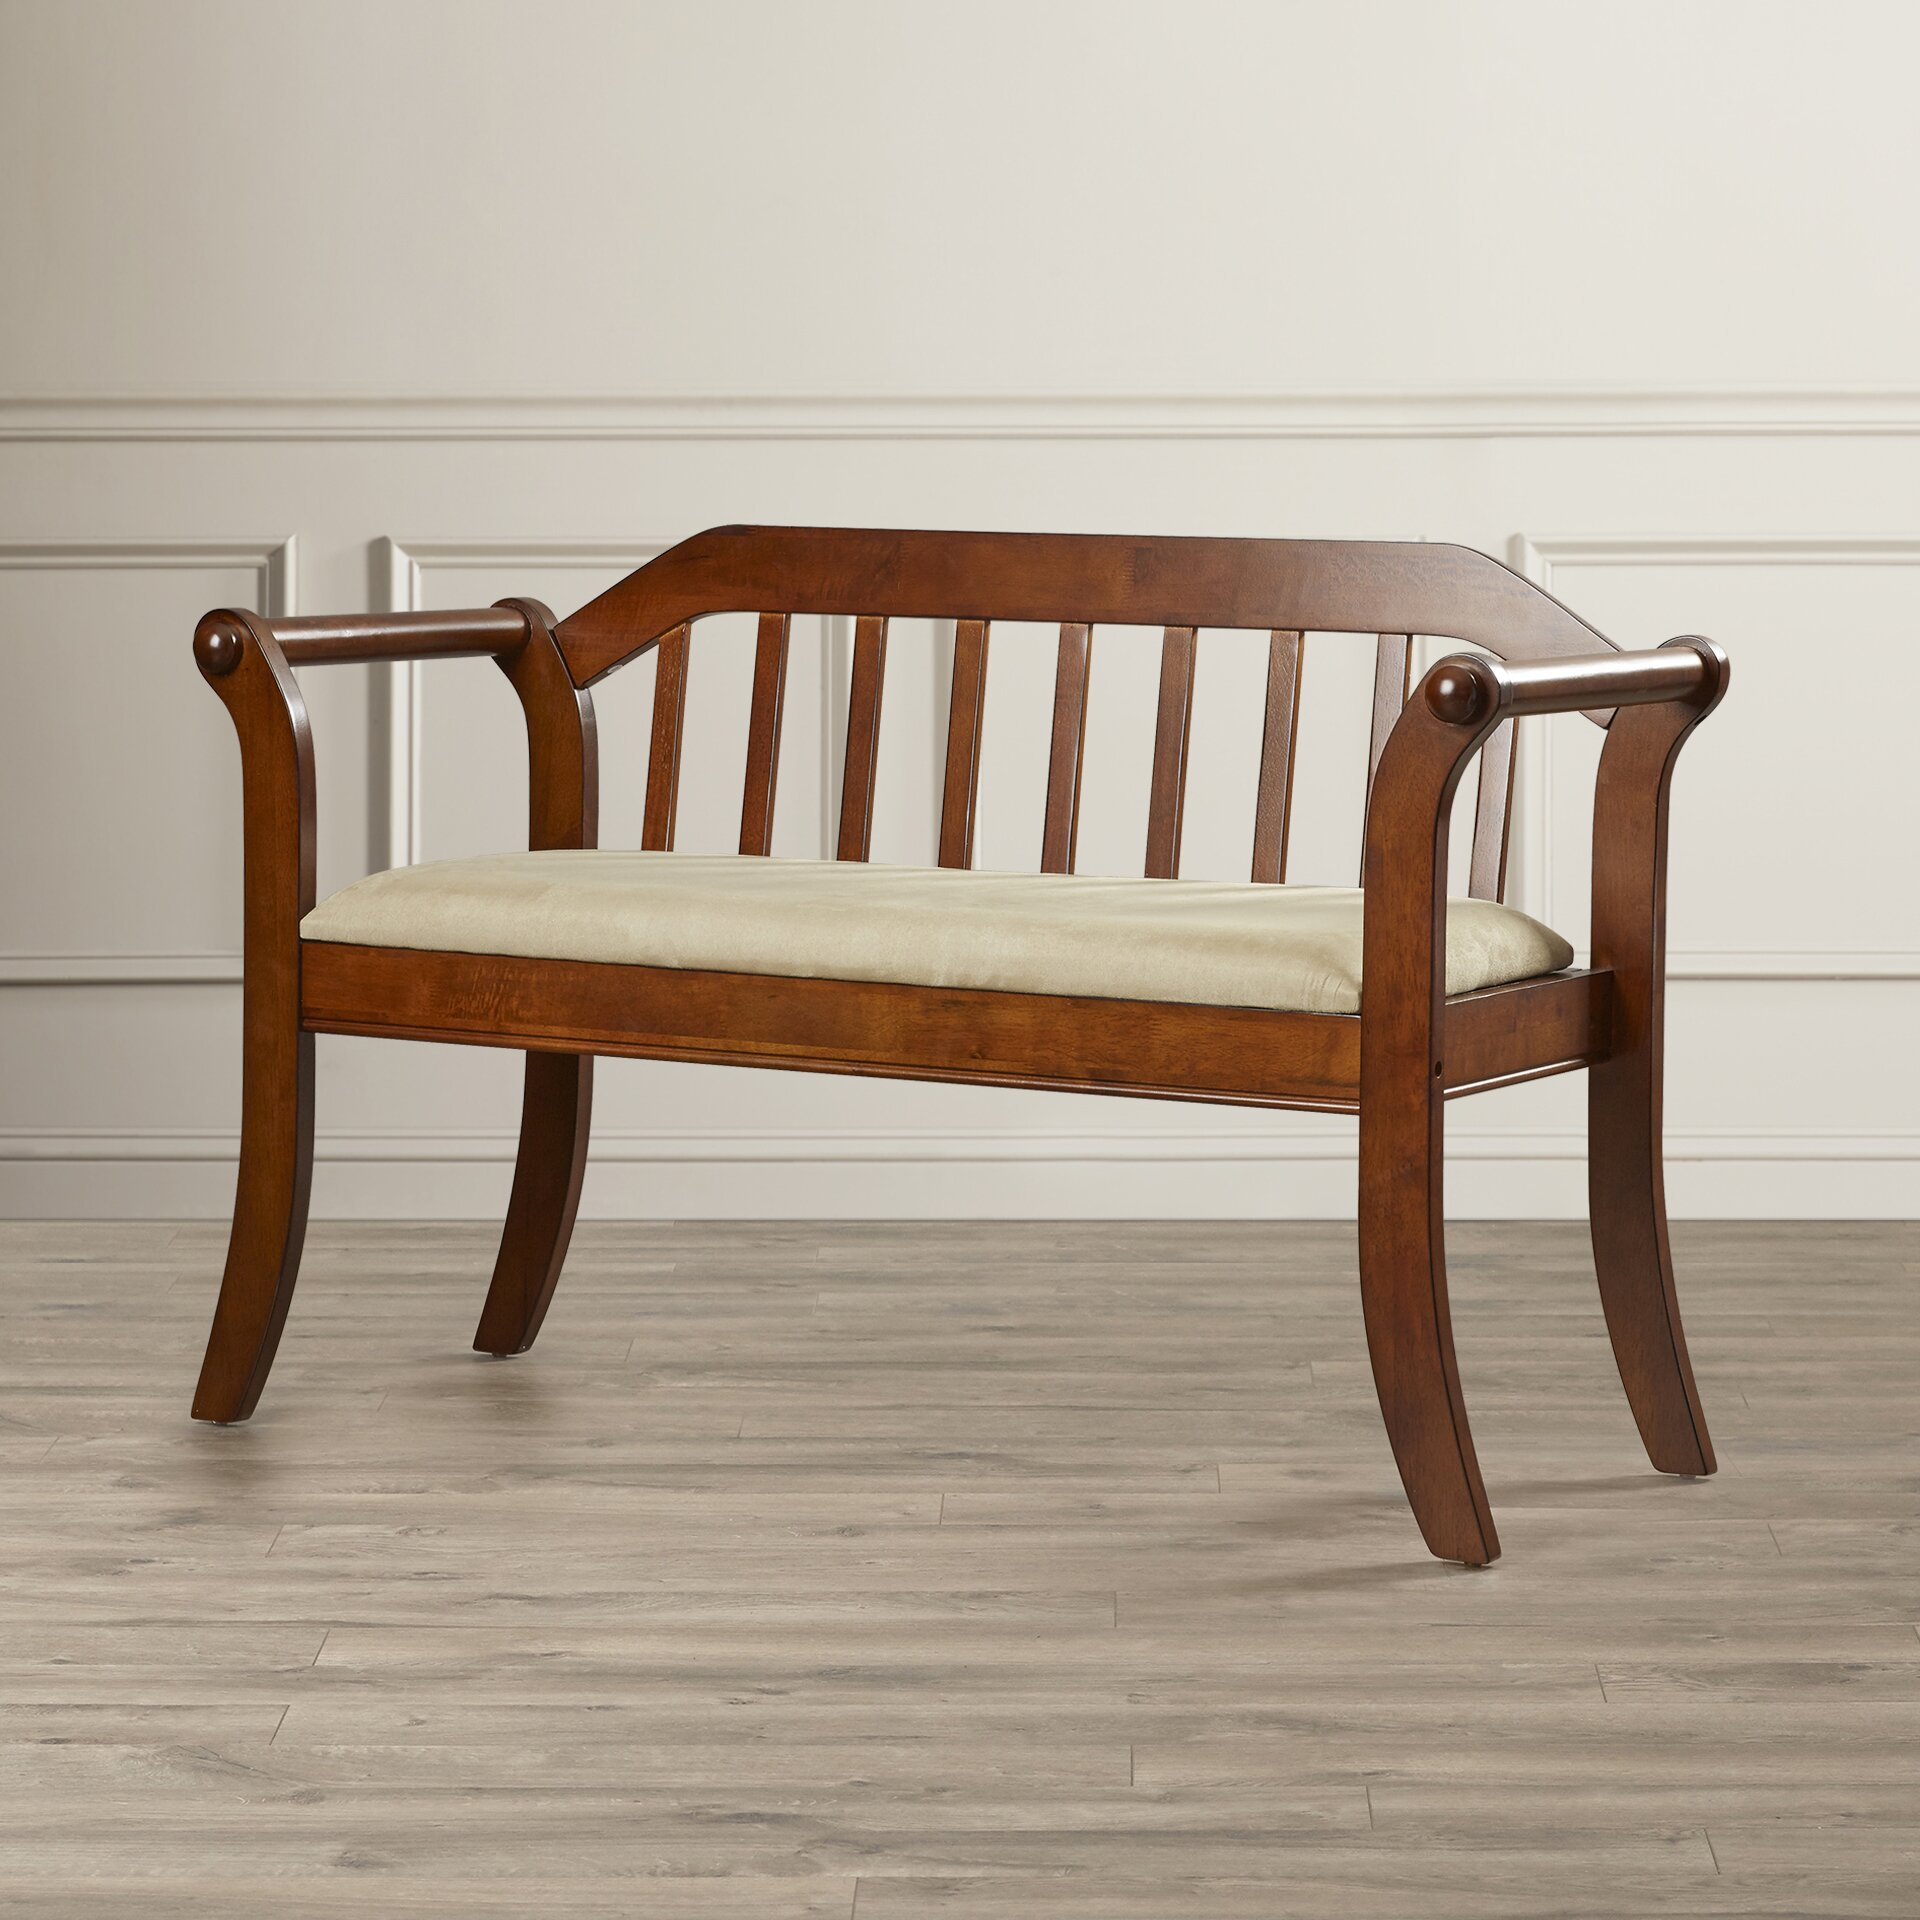 Amazing photo of Alcott Hill Yorkshire Wood Entryway Bench & Reviews Wayfair.ca with #6A3A1C color and 1920x1920 pixels